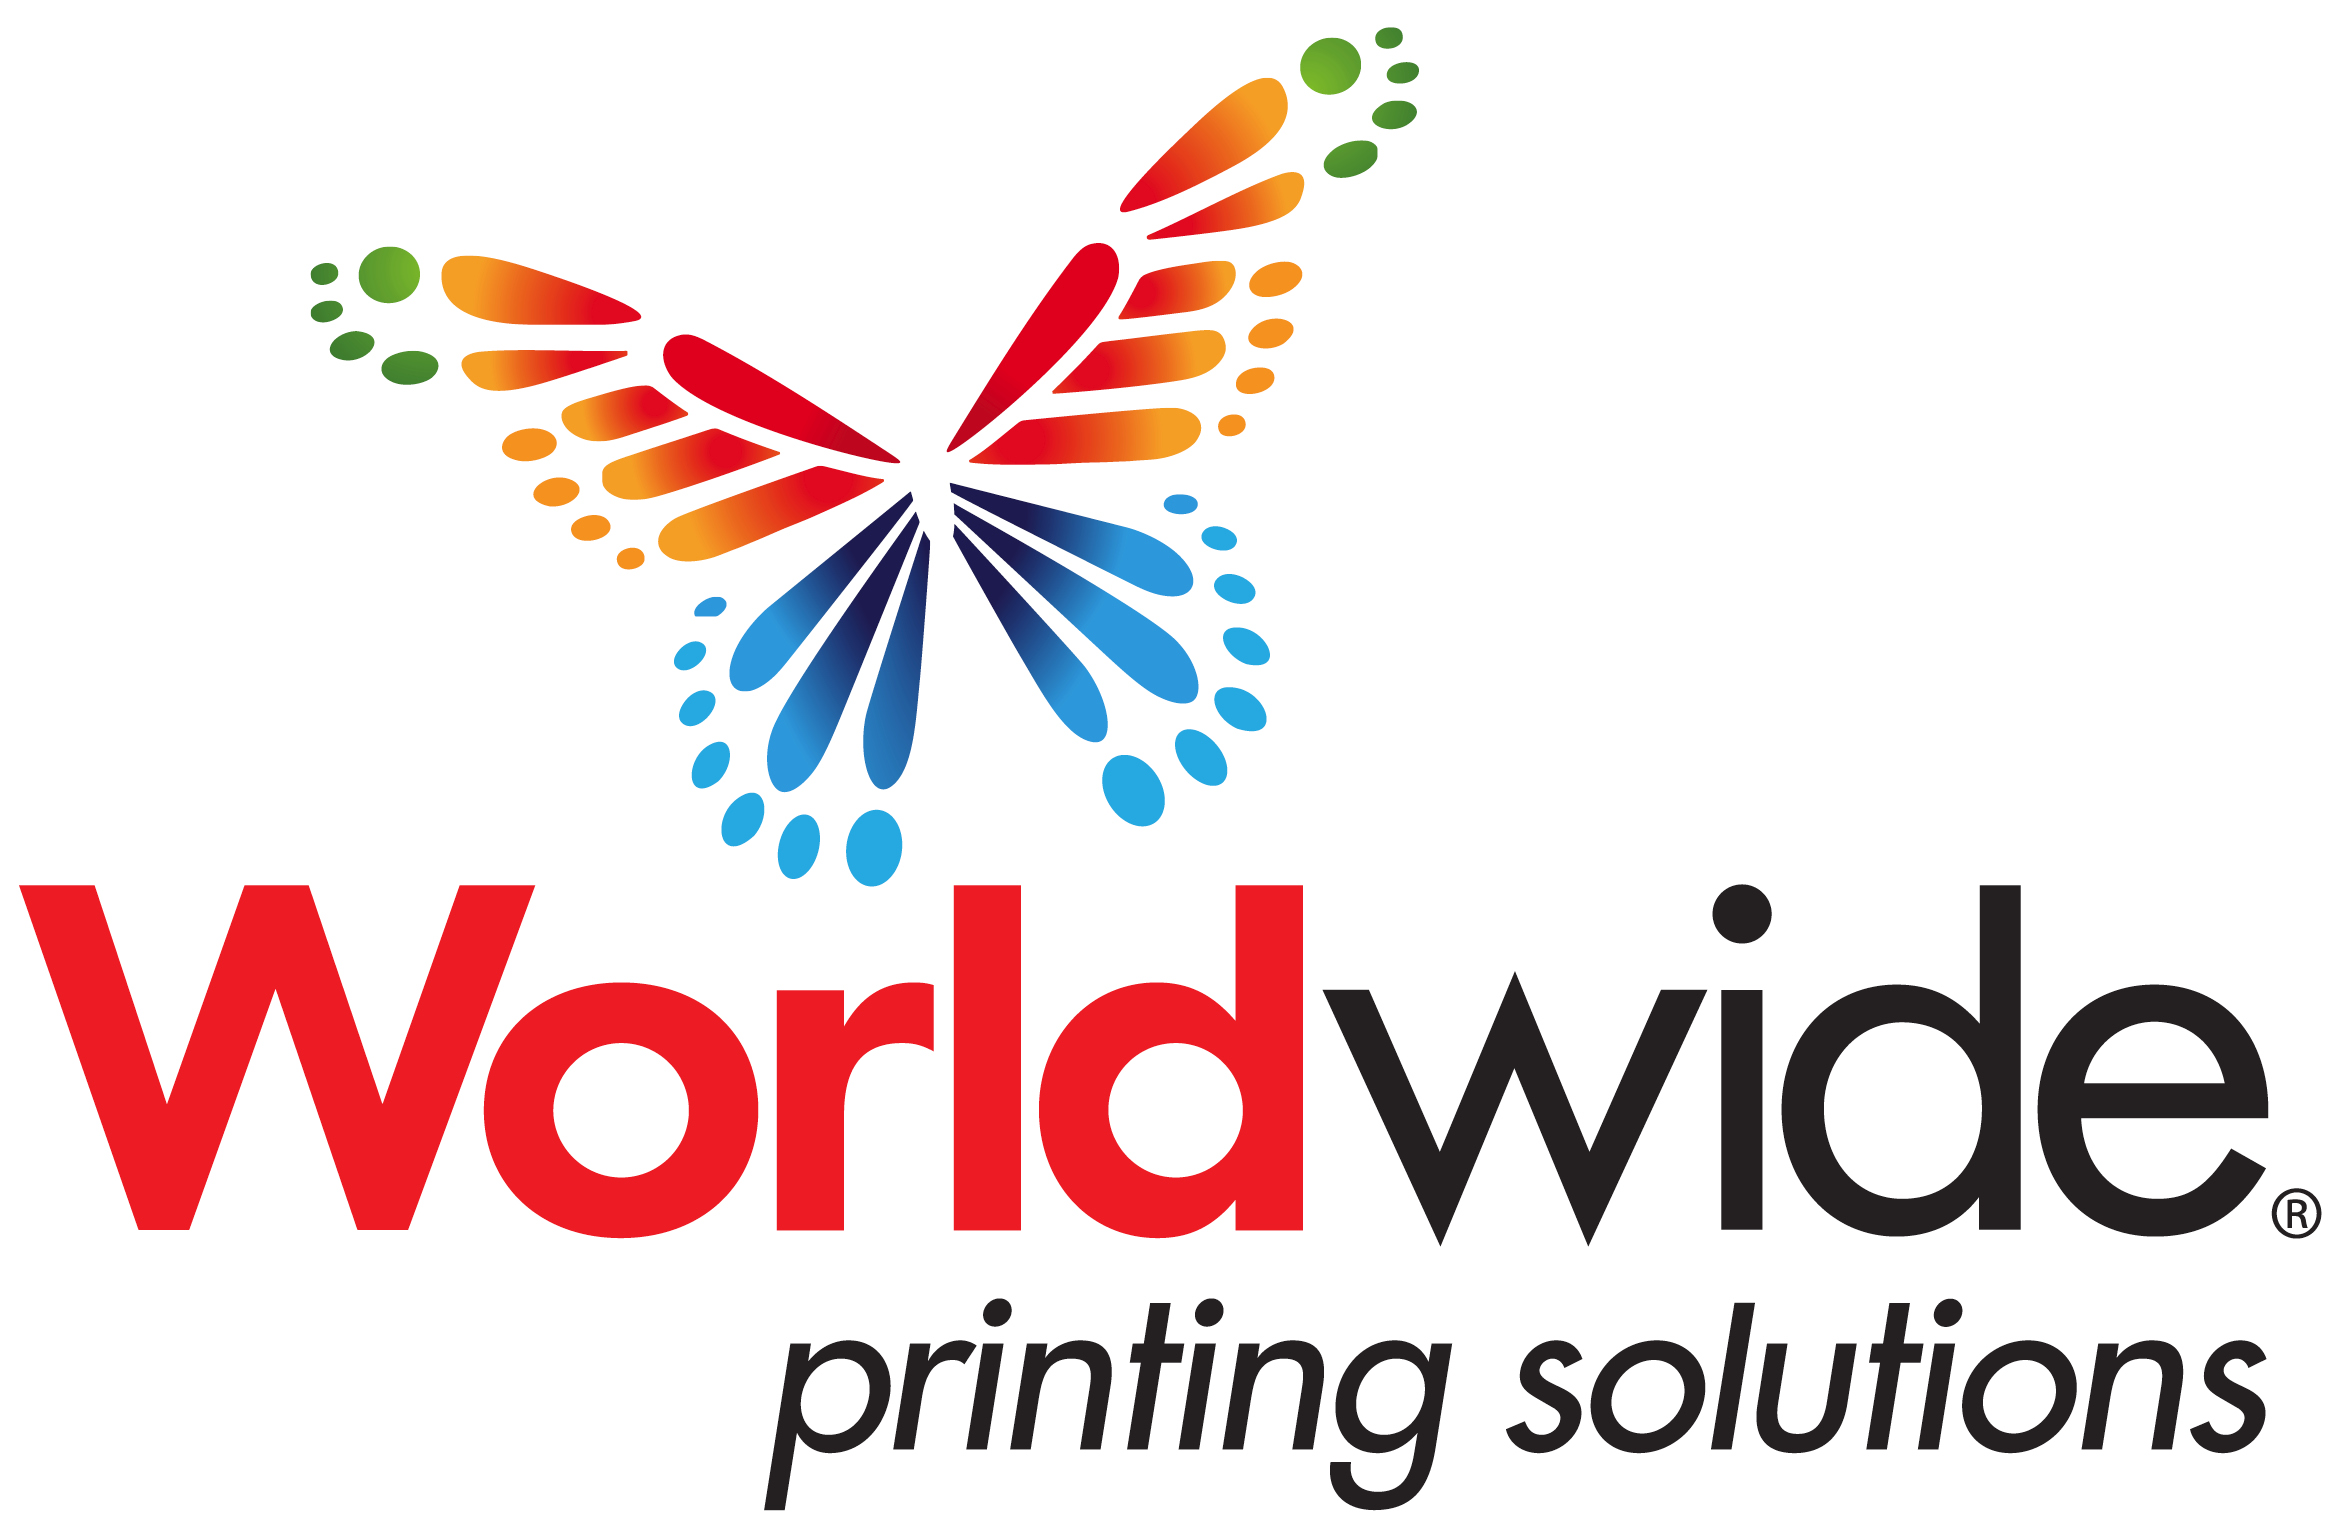 Worldwide Leads Industry in Online Print Management